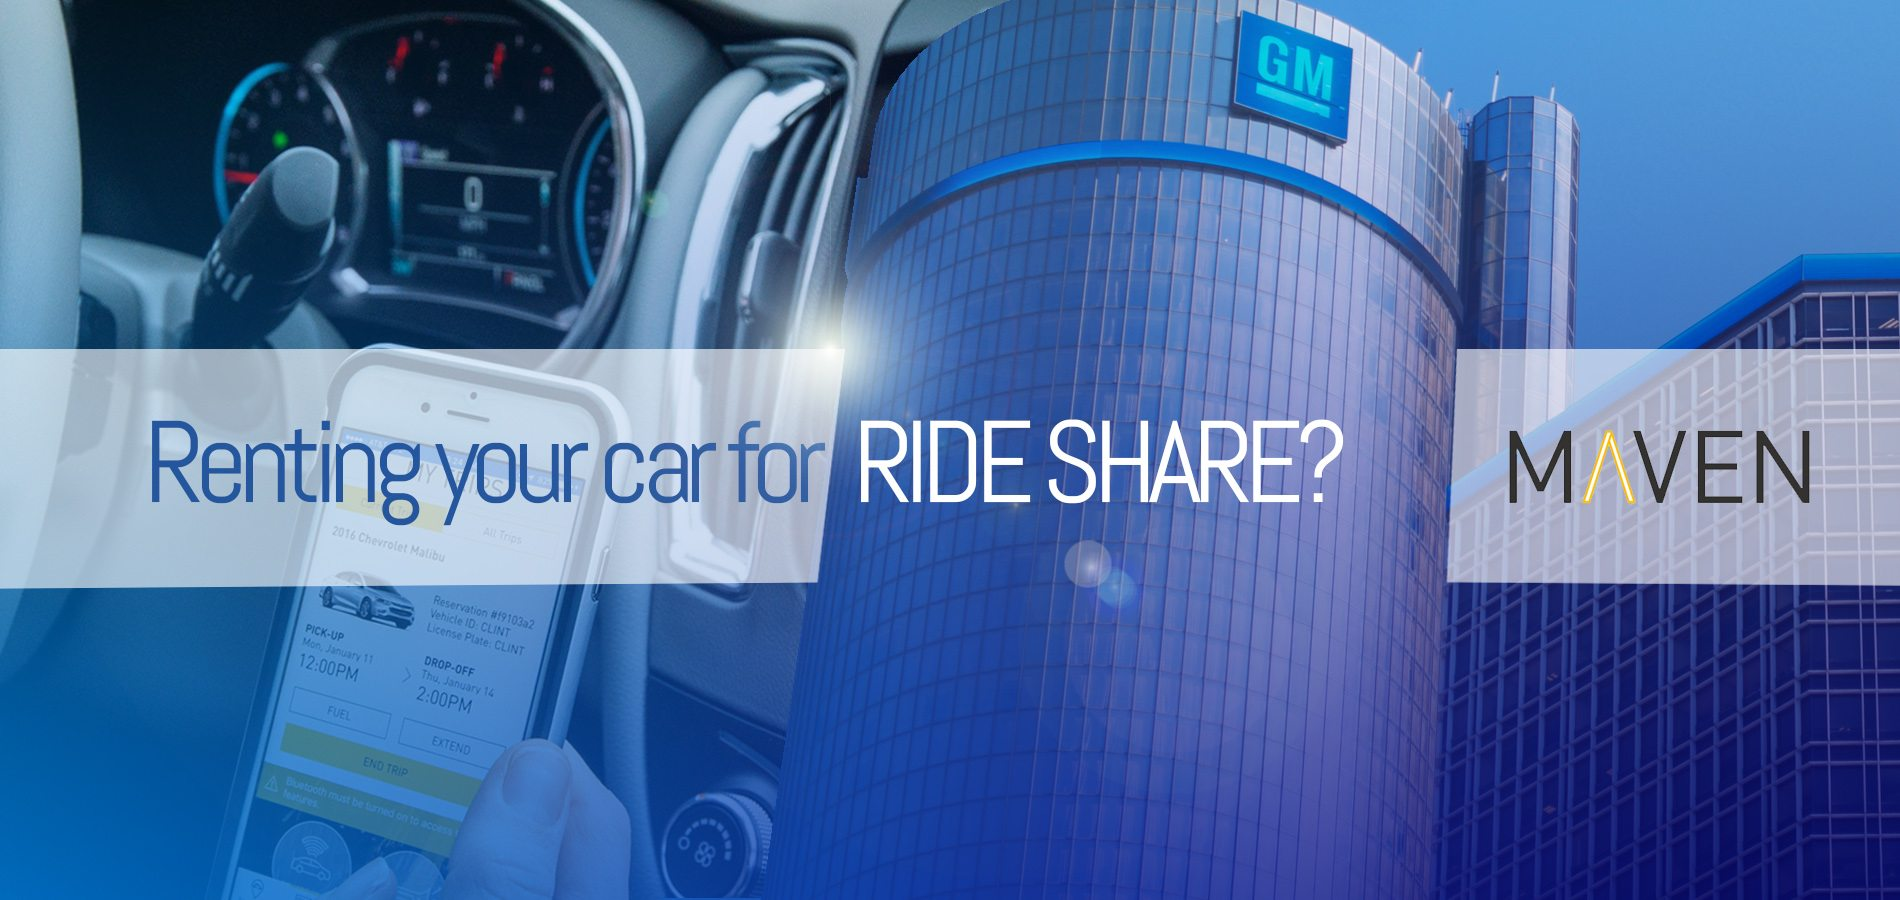 Is GM Shifting Gears to Become a Mobility as a Service Transportation Provider?